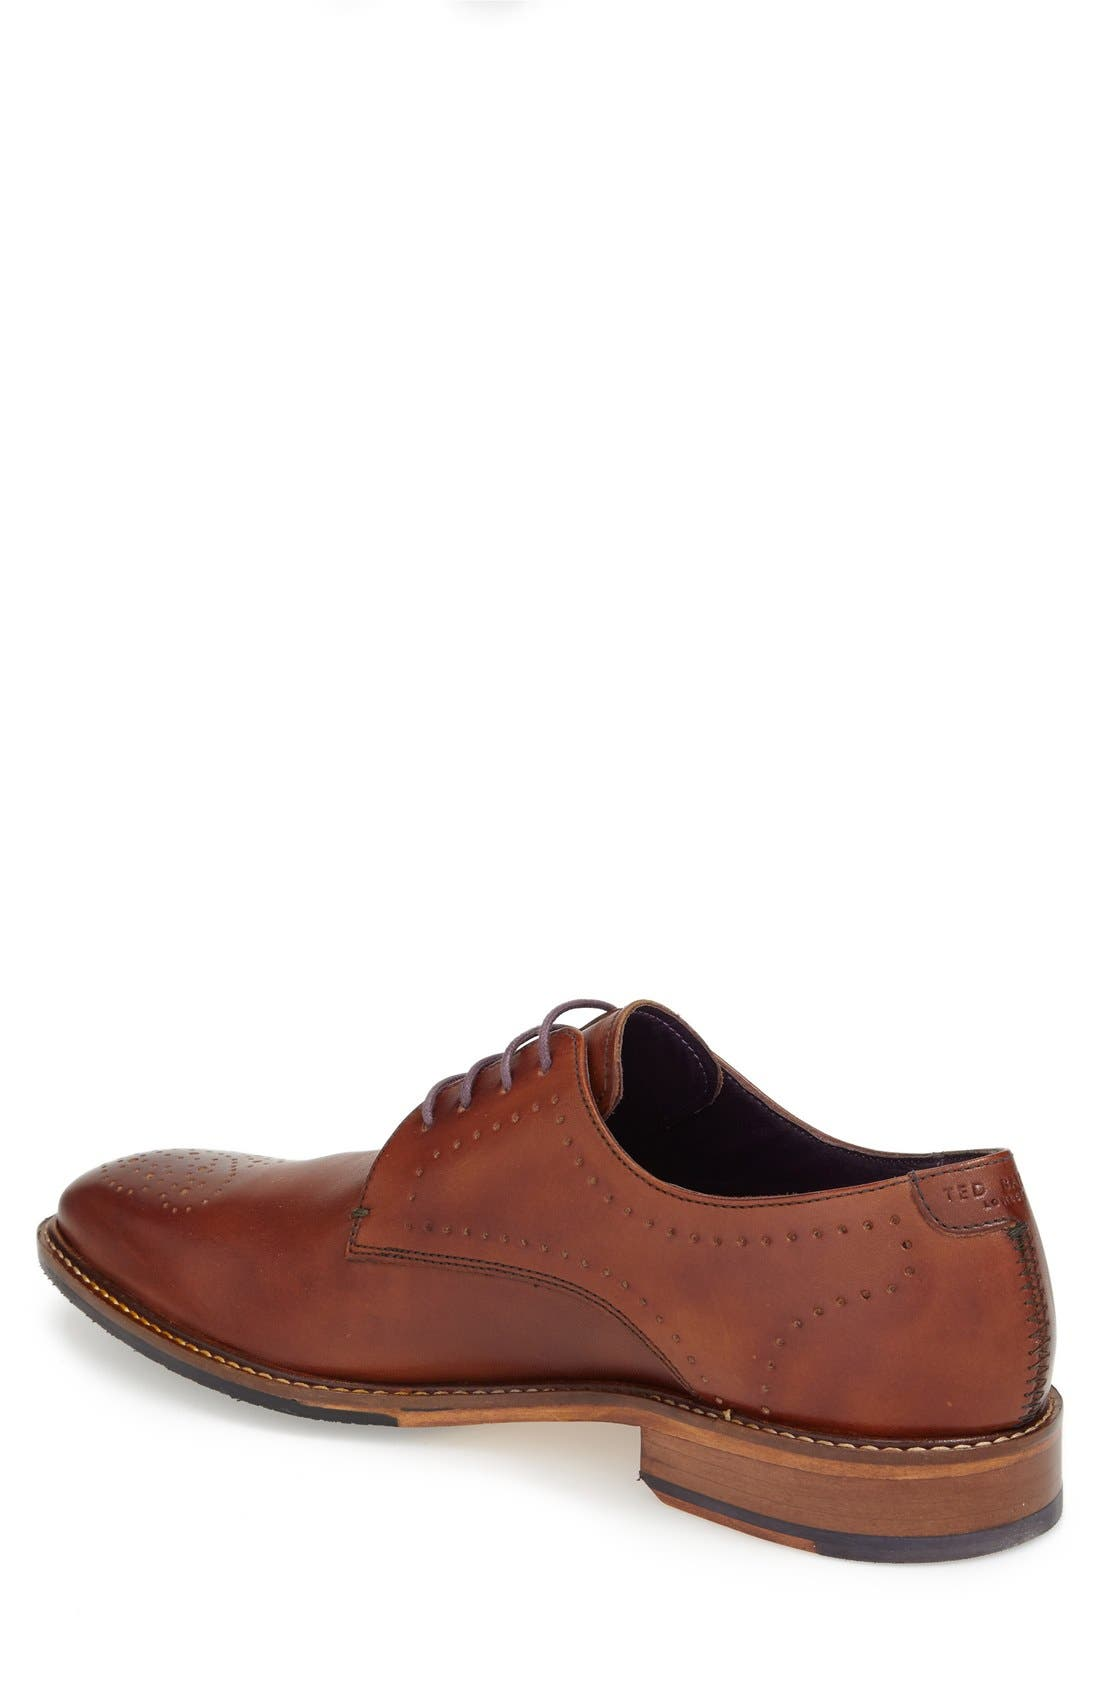 'Marar' Medallion Toe Derby,                             Alternate thumbnail 2, color,                             Tan